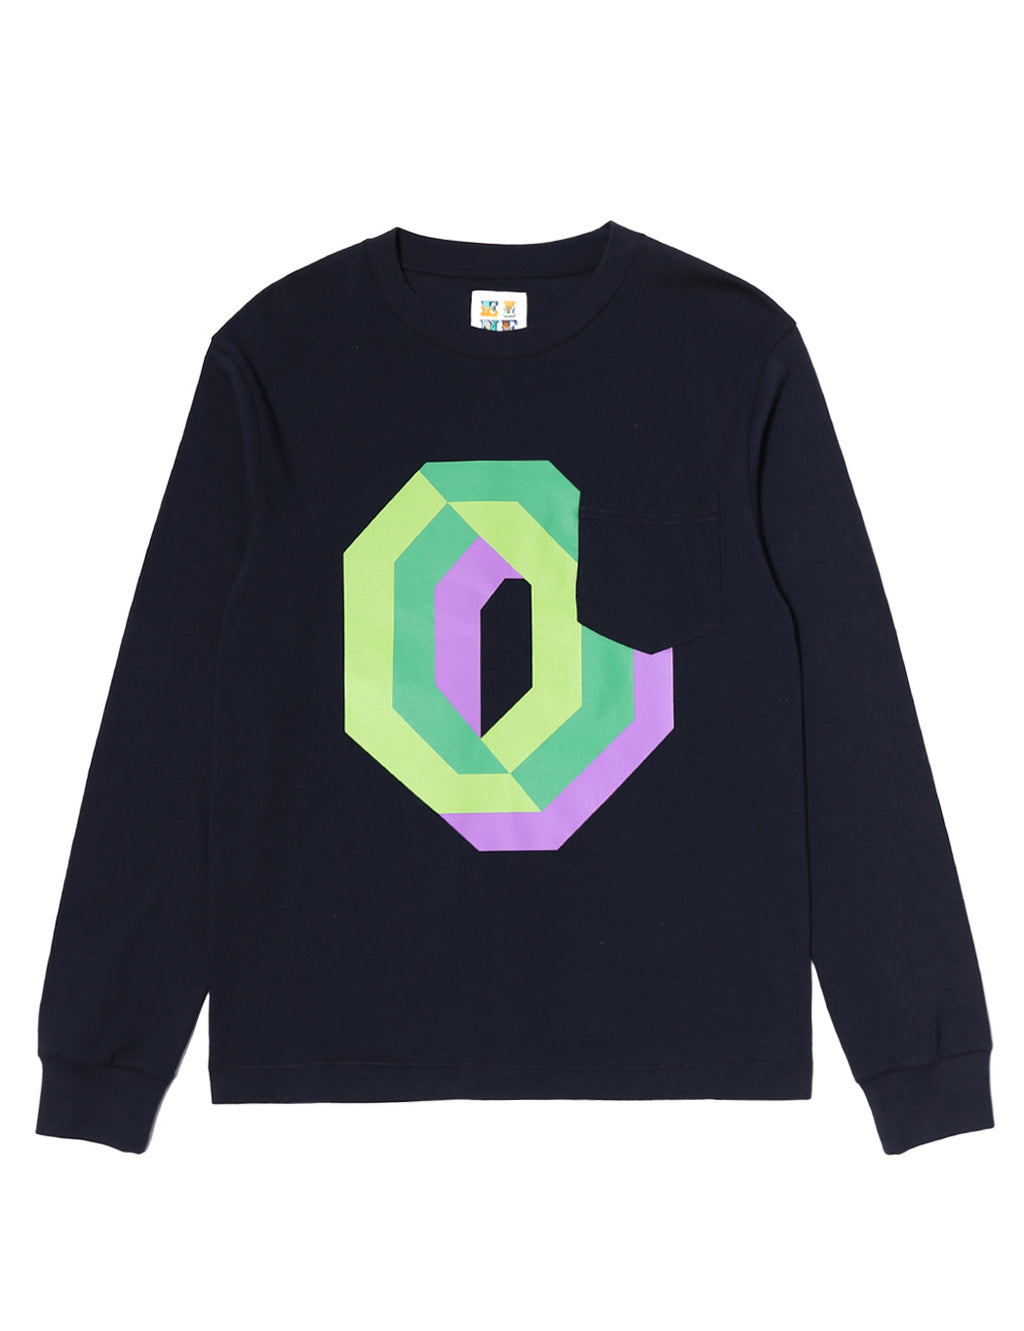 Gaspipe O Pocket L/S T-Shirt - Navy - Eine London by Ben Eine